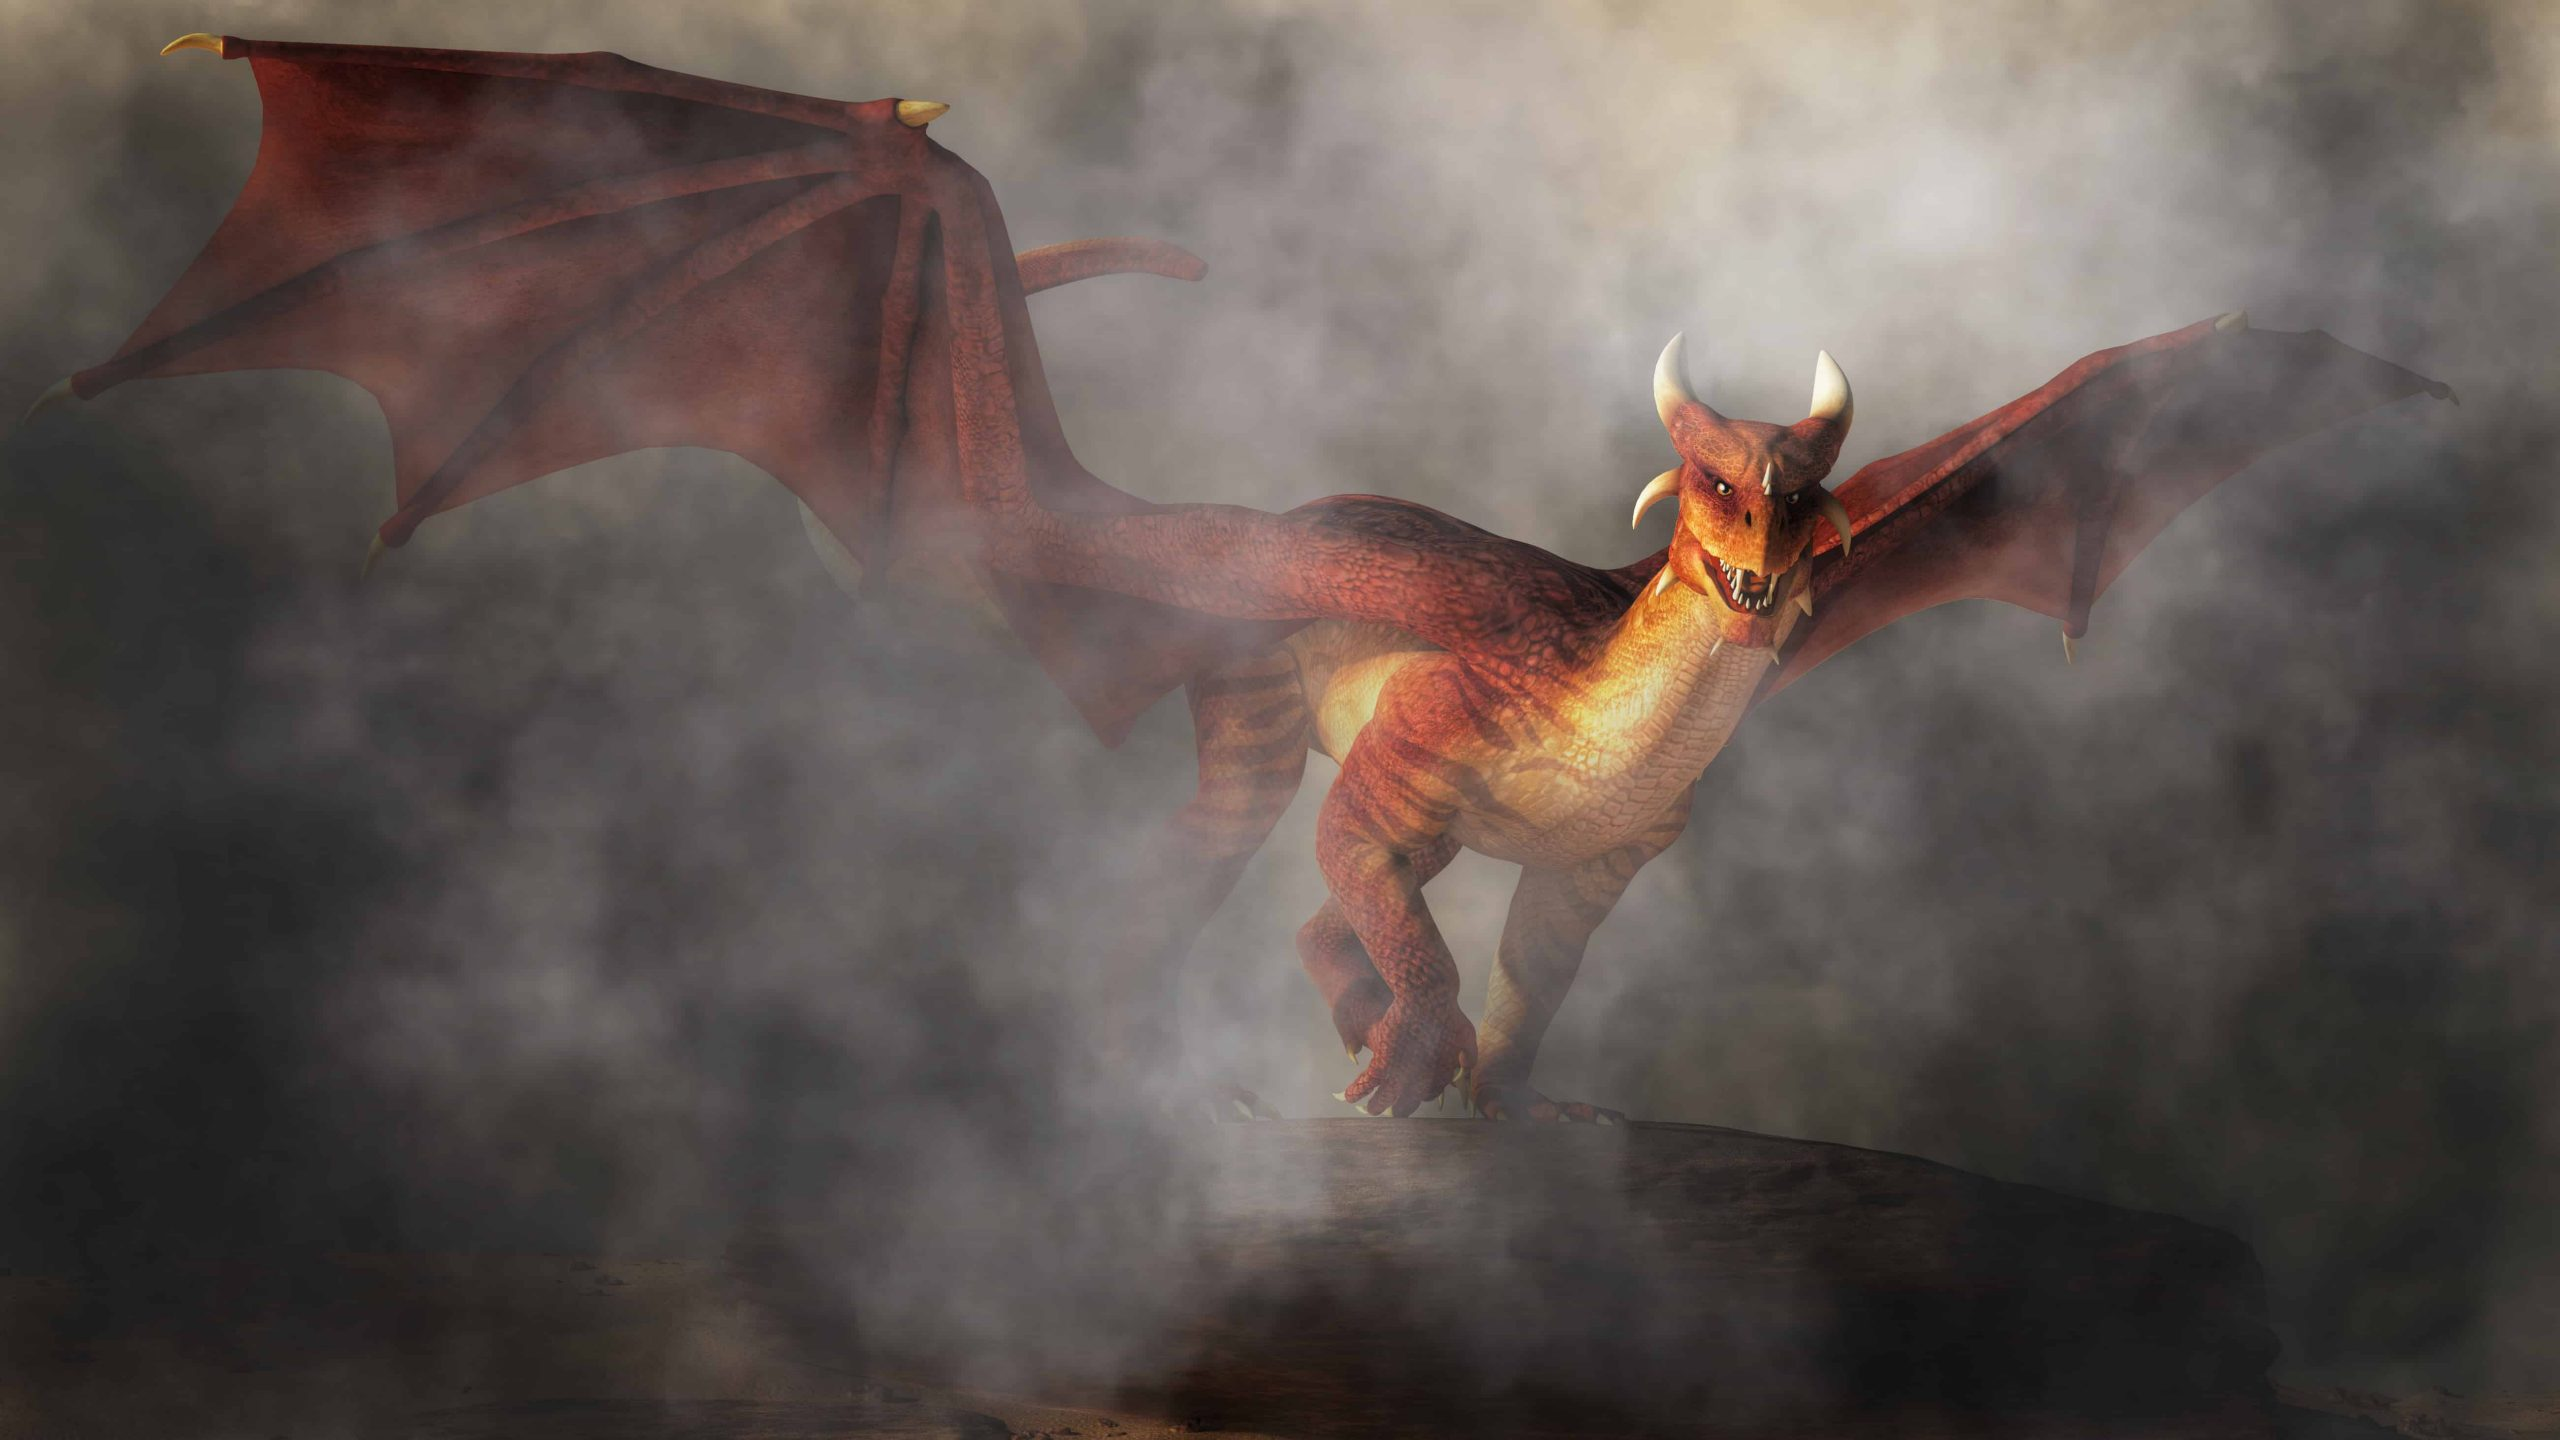 Red dragon dream meaning